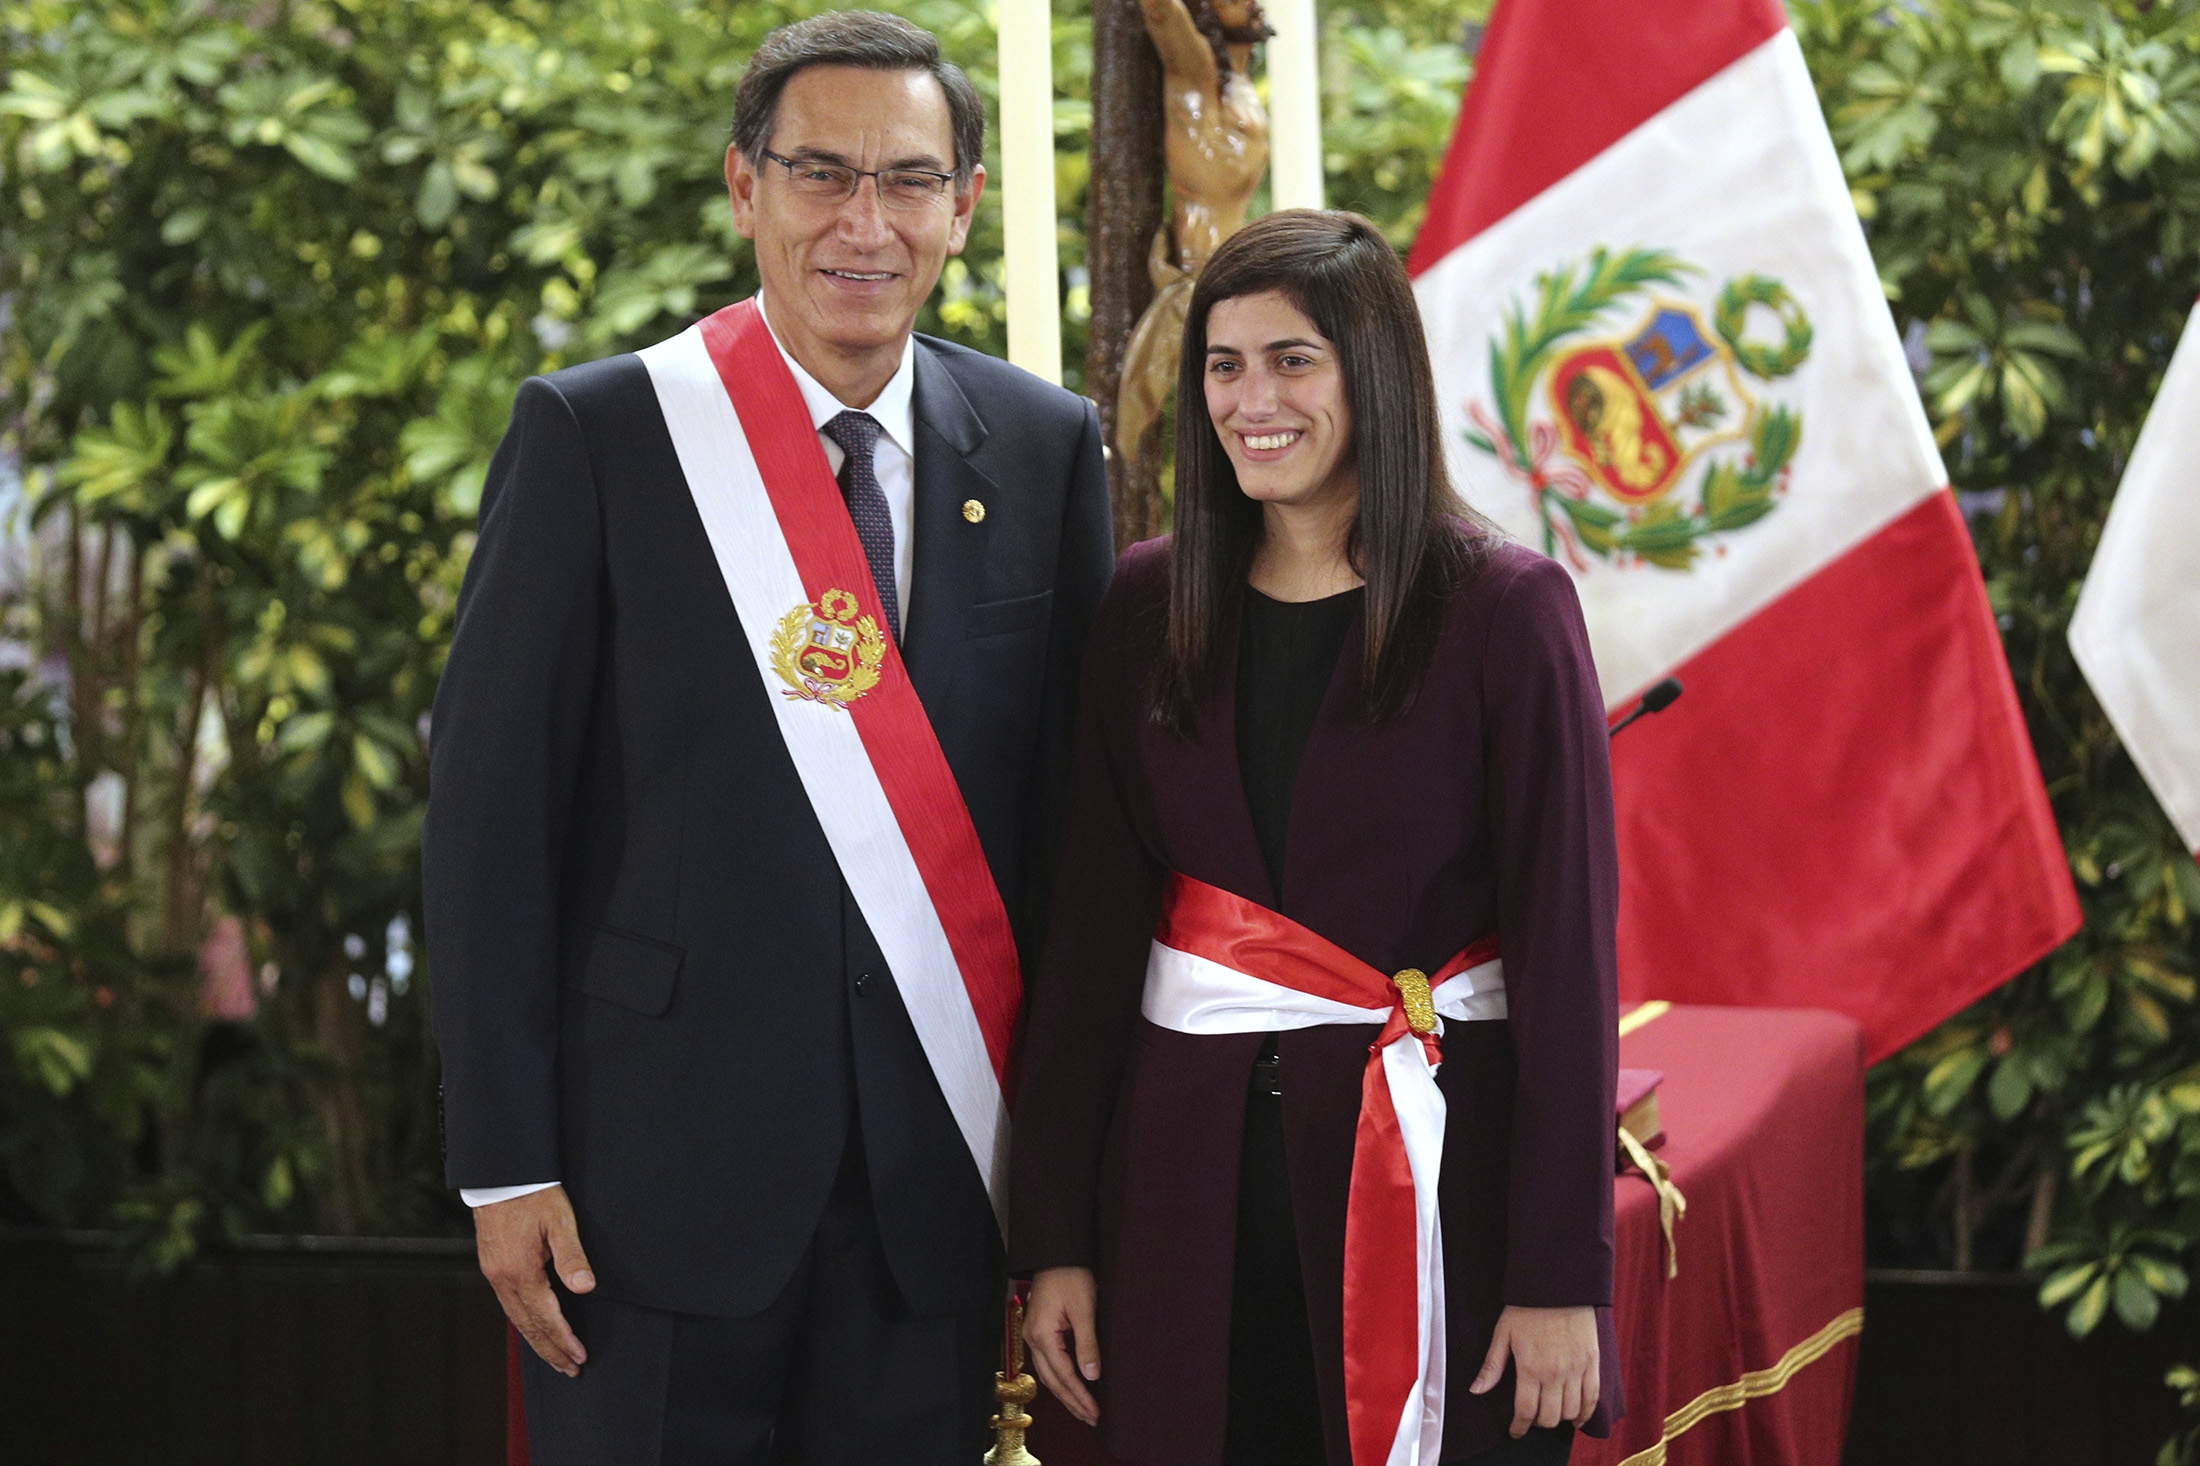 MPA/ID Alumna Toni Alva poses with President Martin Vizcarra after being sworn in as Finance Minister.